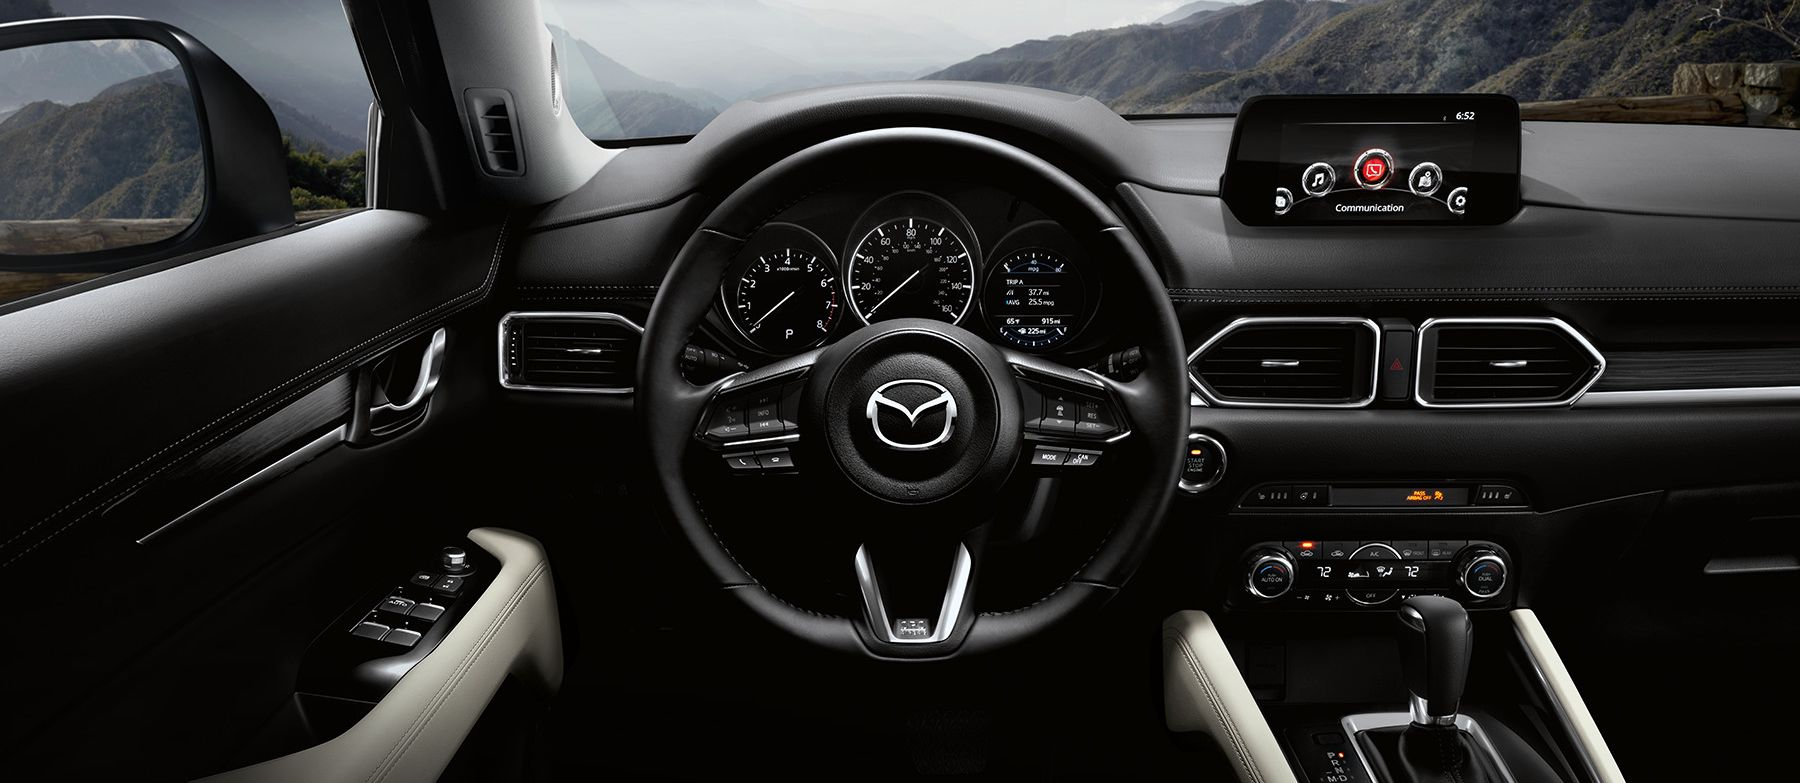 mazda cx 5 interior parts. Black Bedroom Furniture Sets. Home Design Ideas